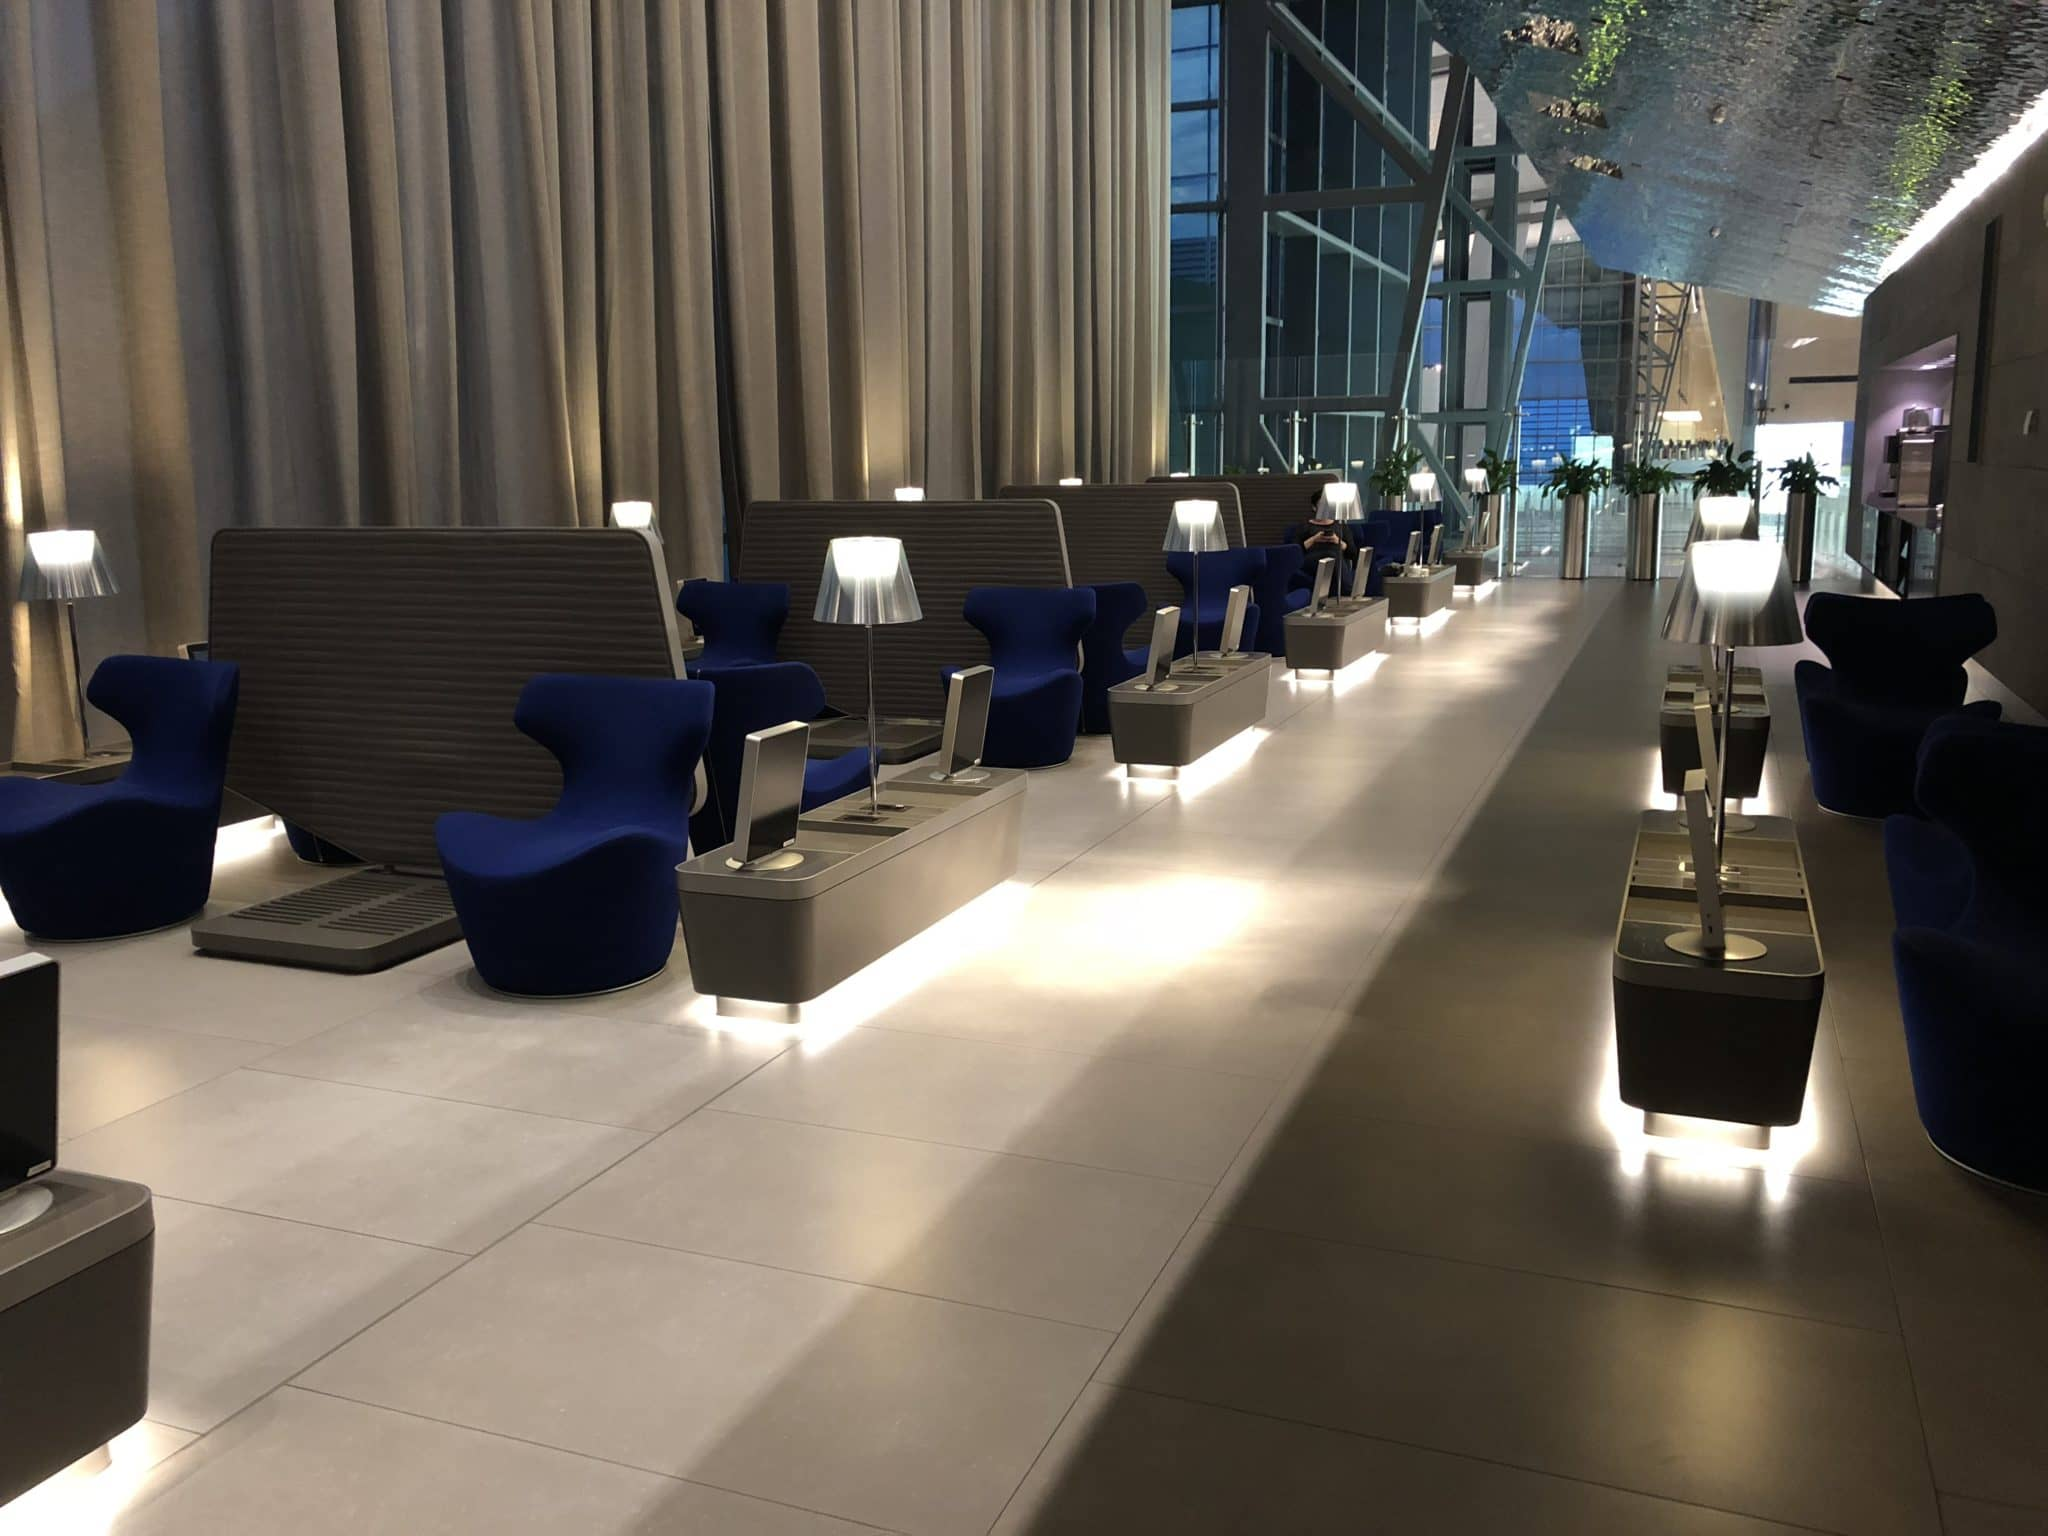 Qatar Airways Al Mourjan Business Class Lounge Sitzoption rechts vom Eingang